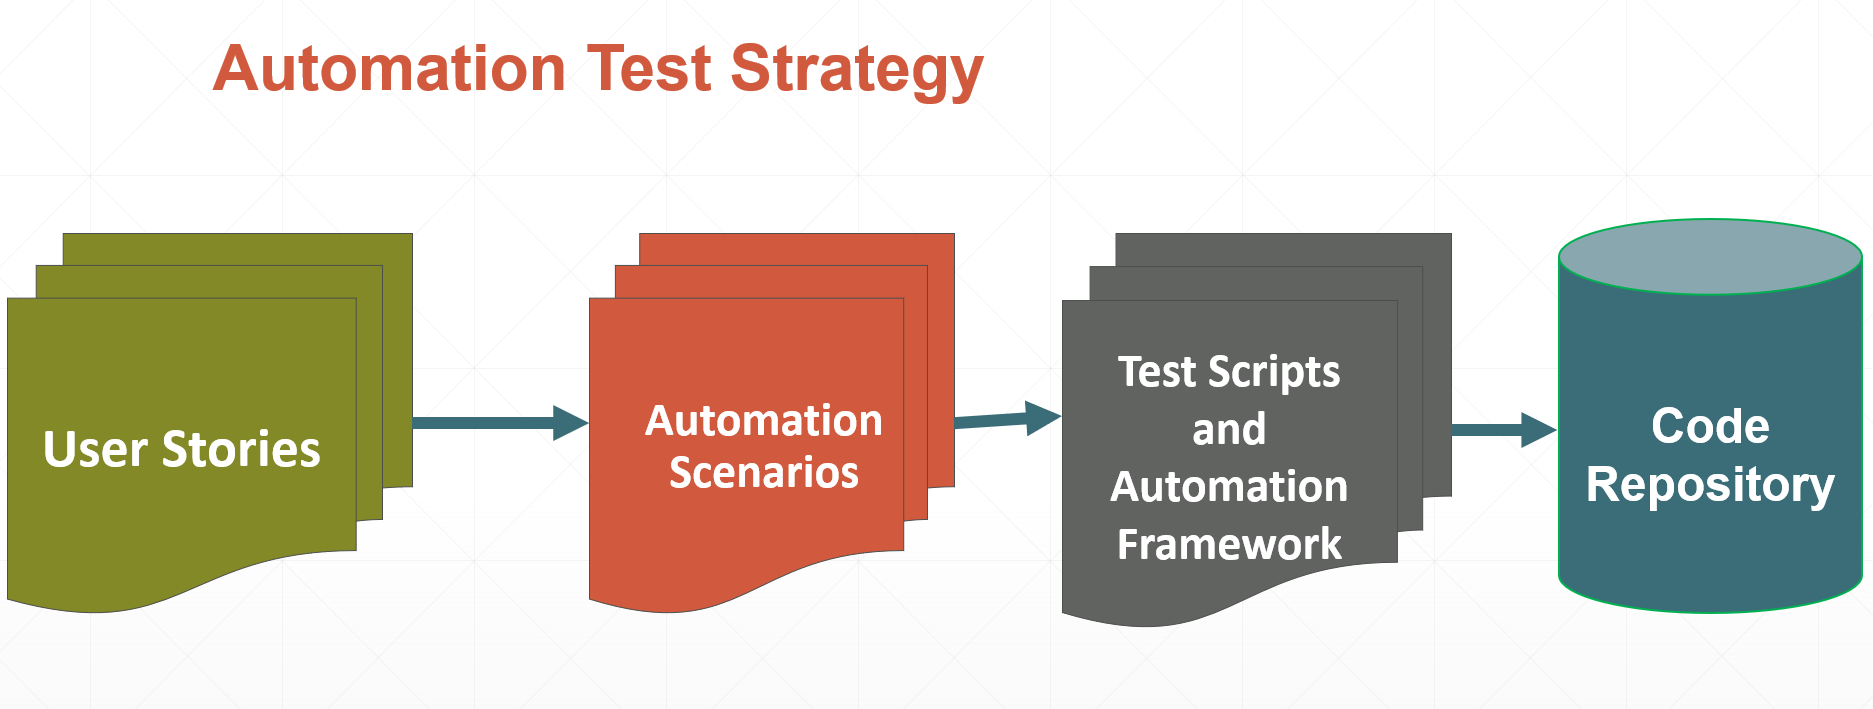 Automation Test Strategy